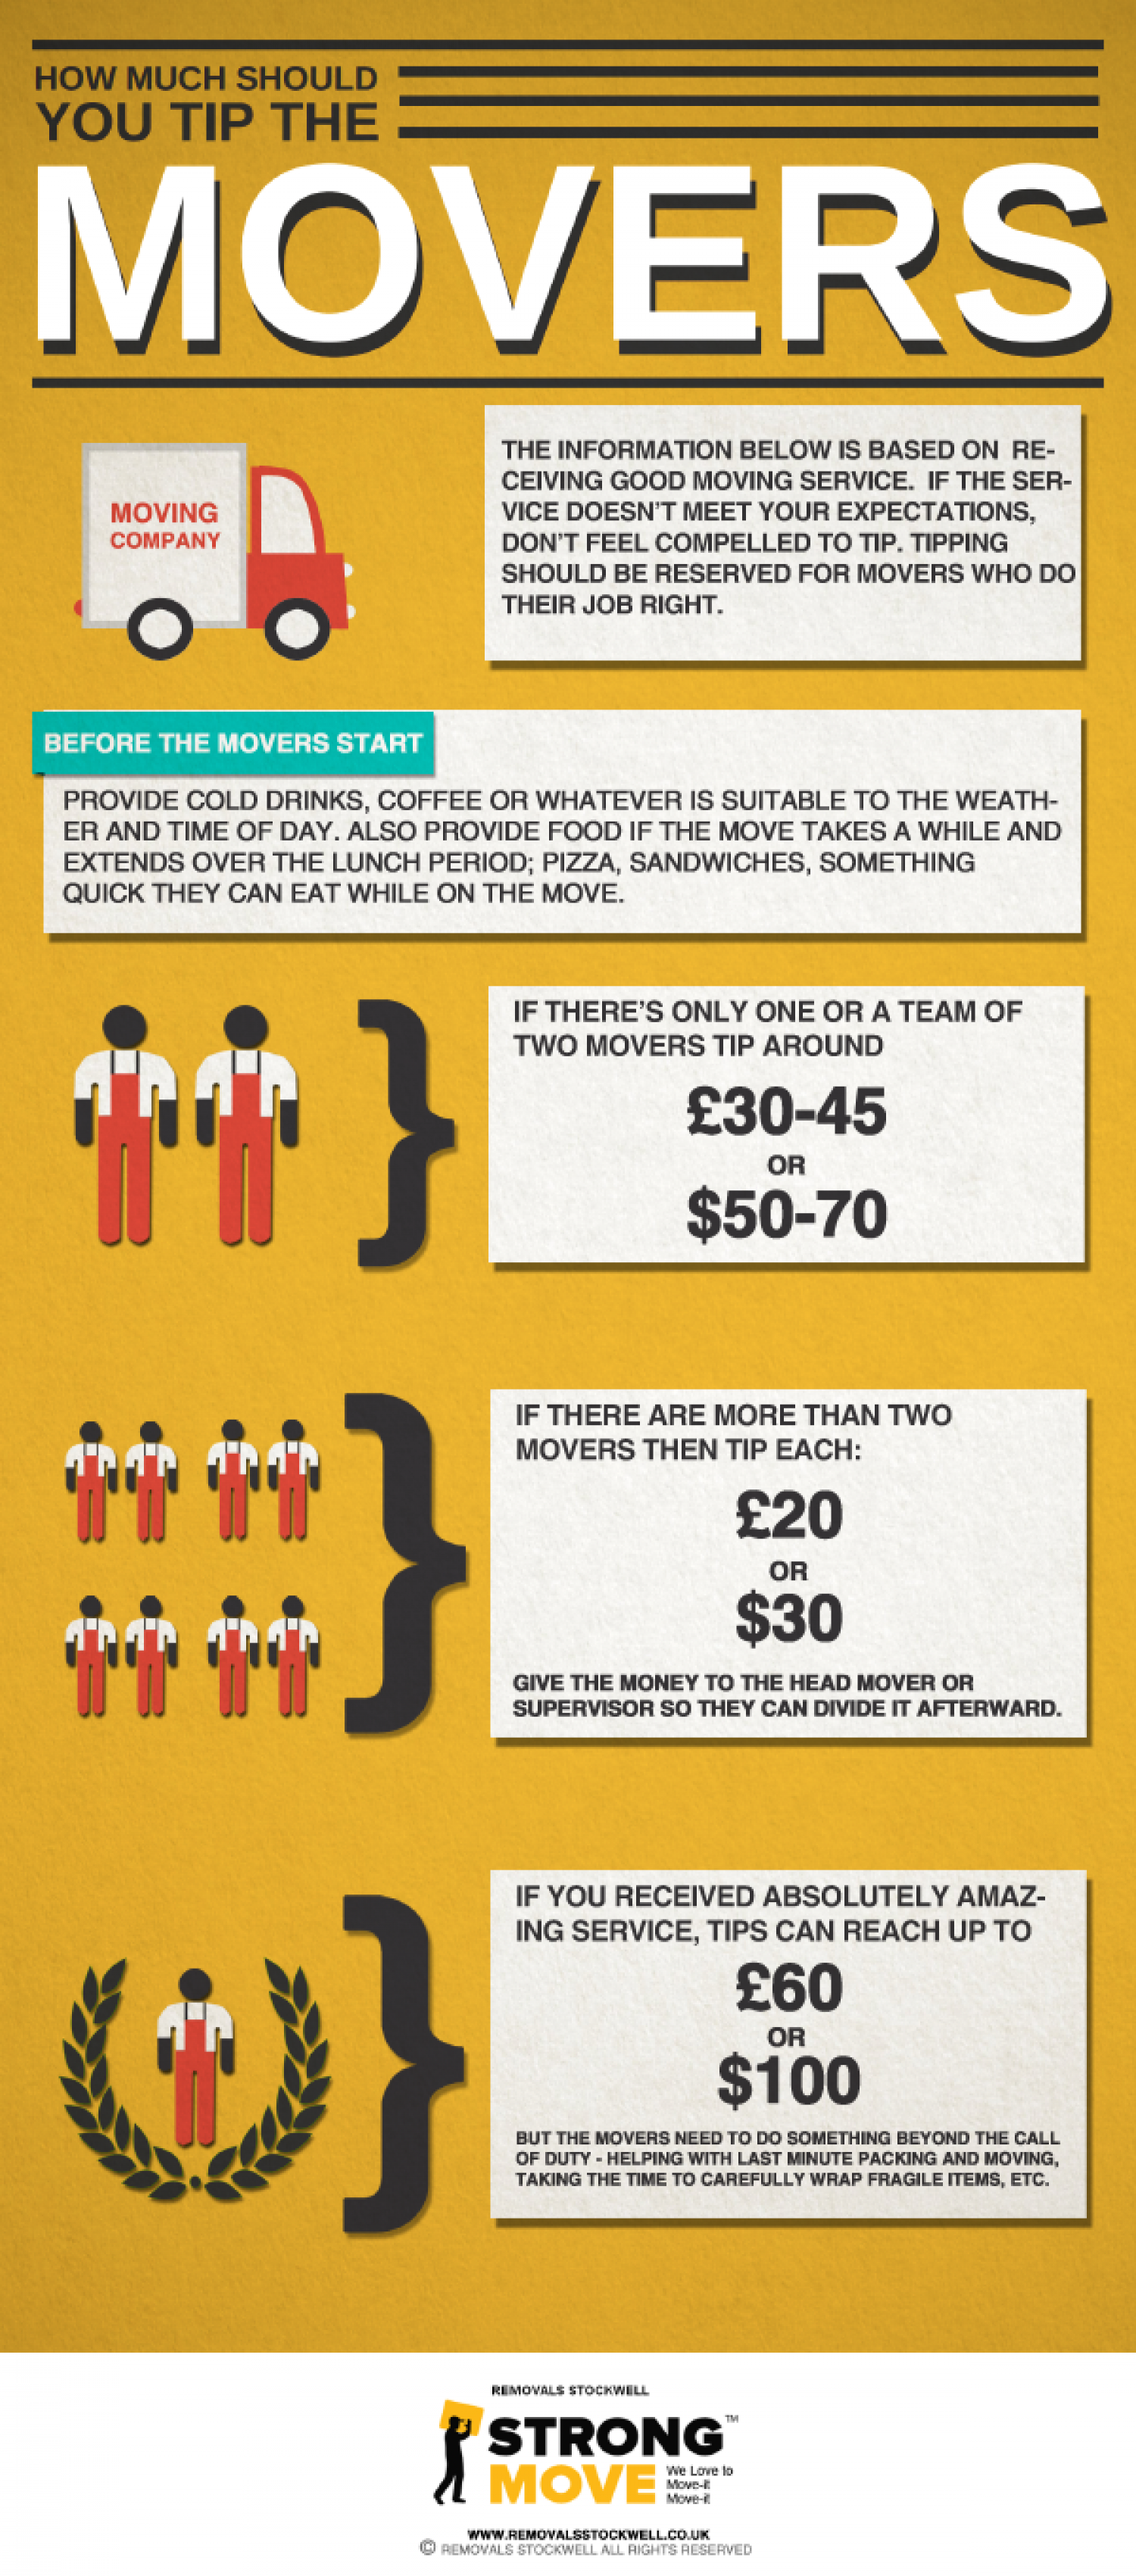 How Much Should You Tip a Mover? Infographic